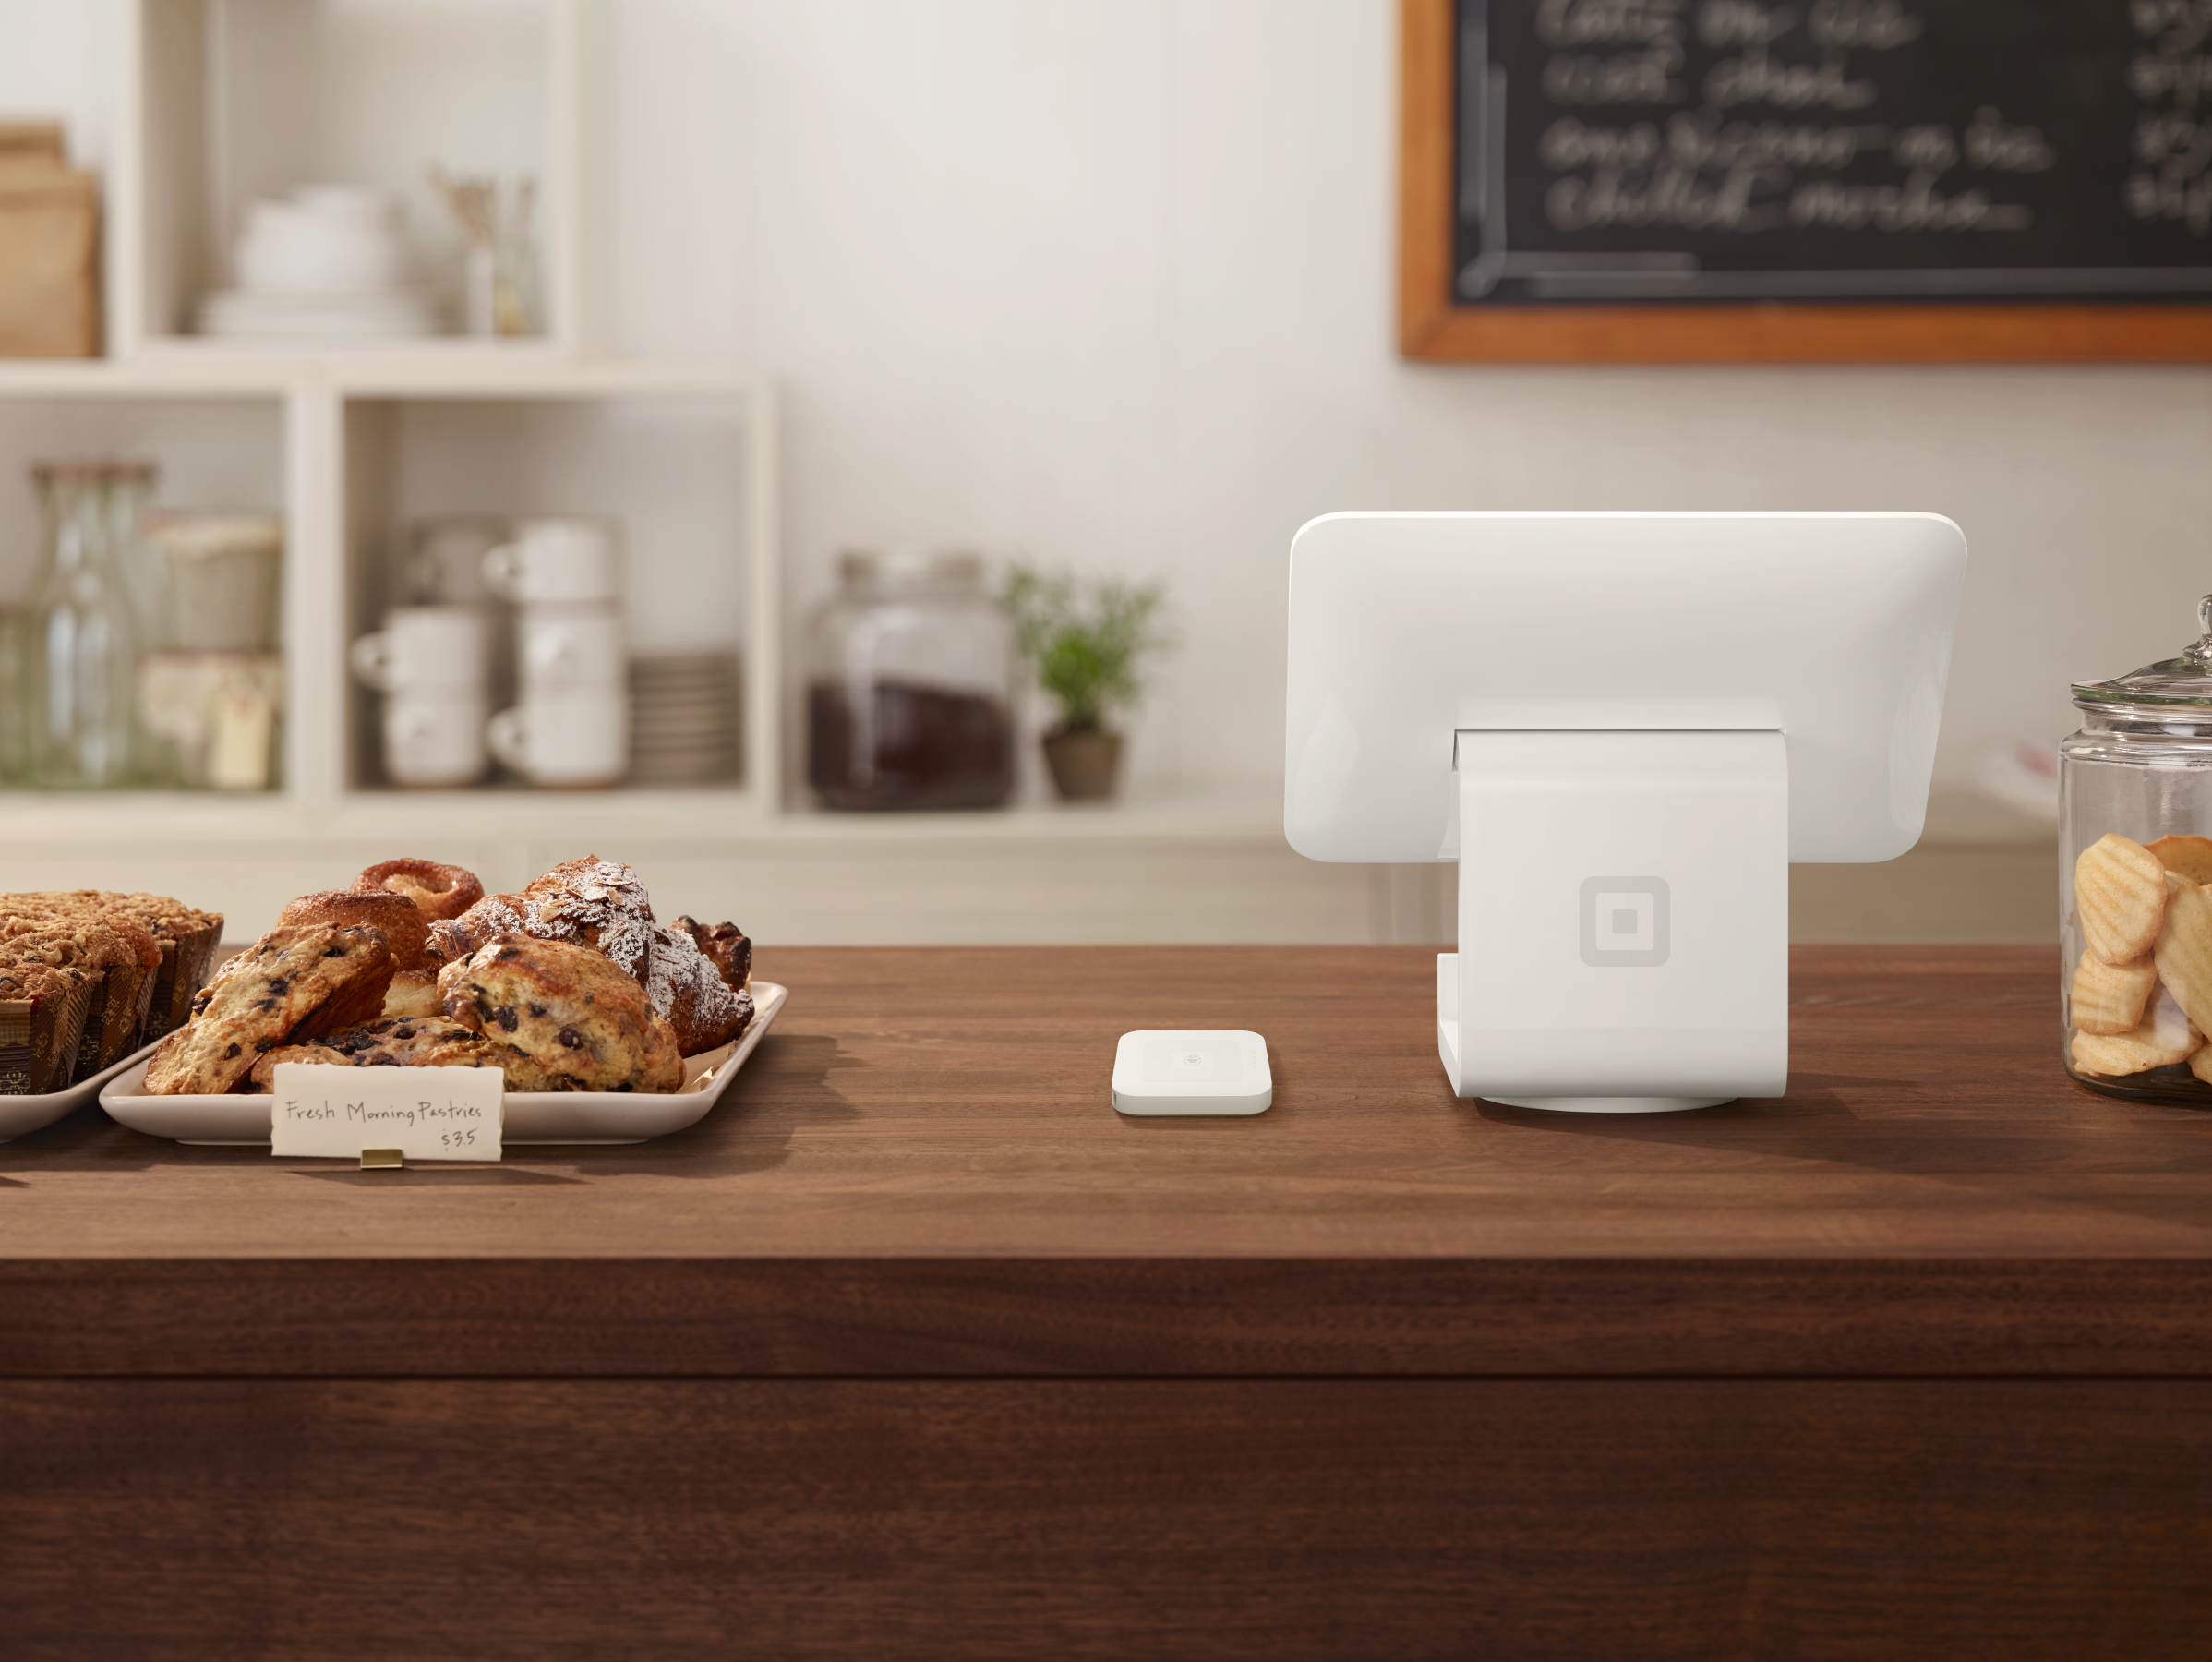 A white Square stand and contactless card reader sits on a cafe counter with pastries.